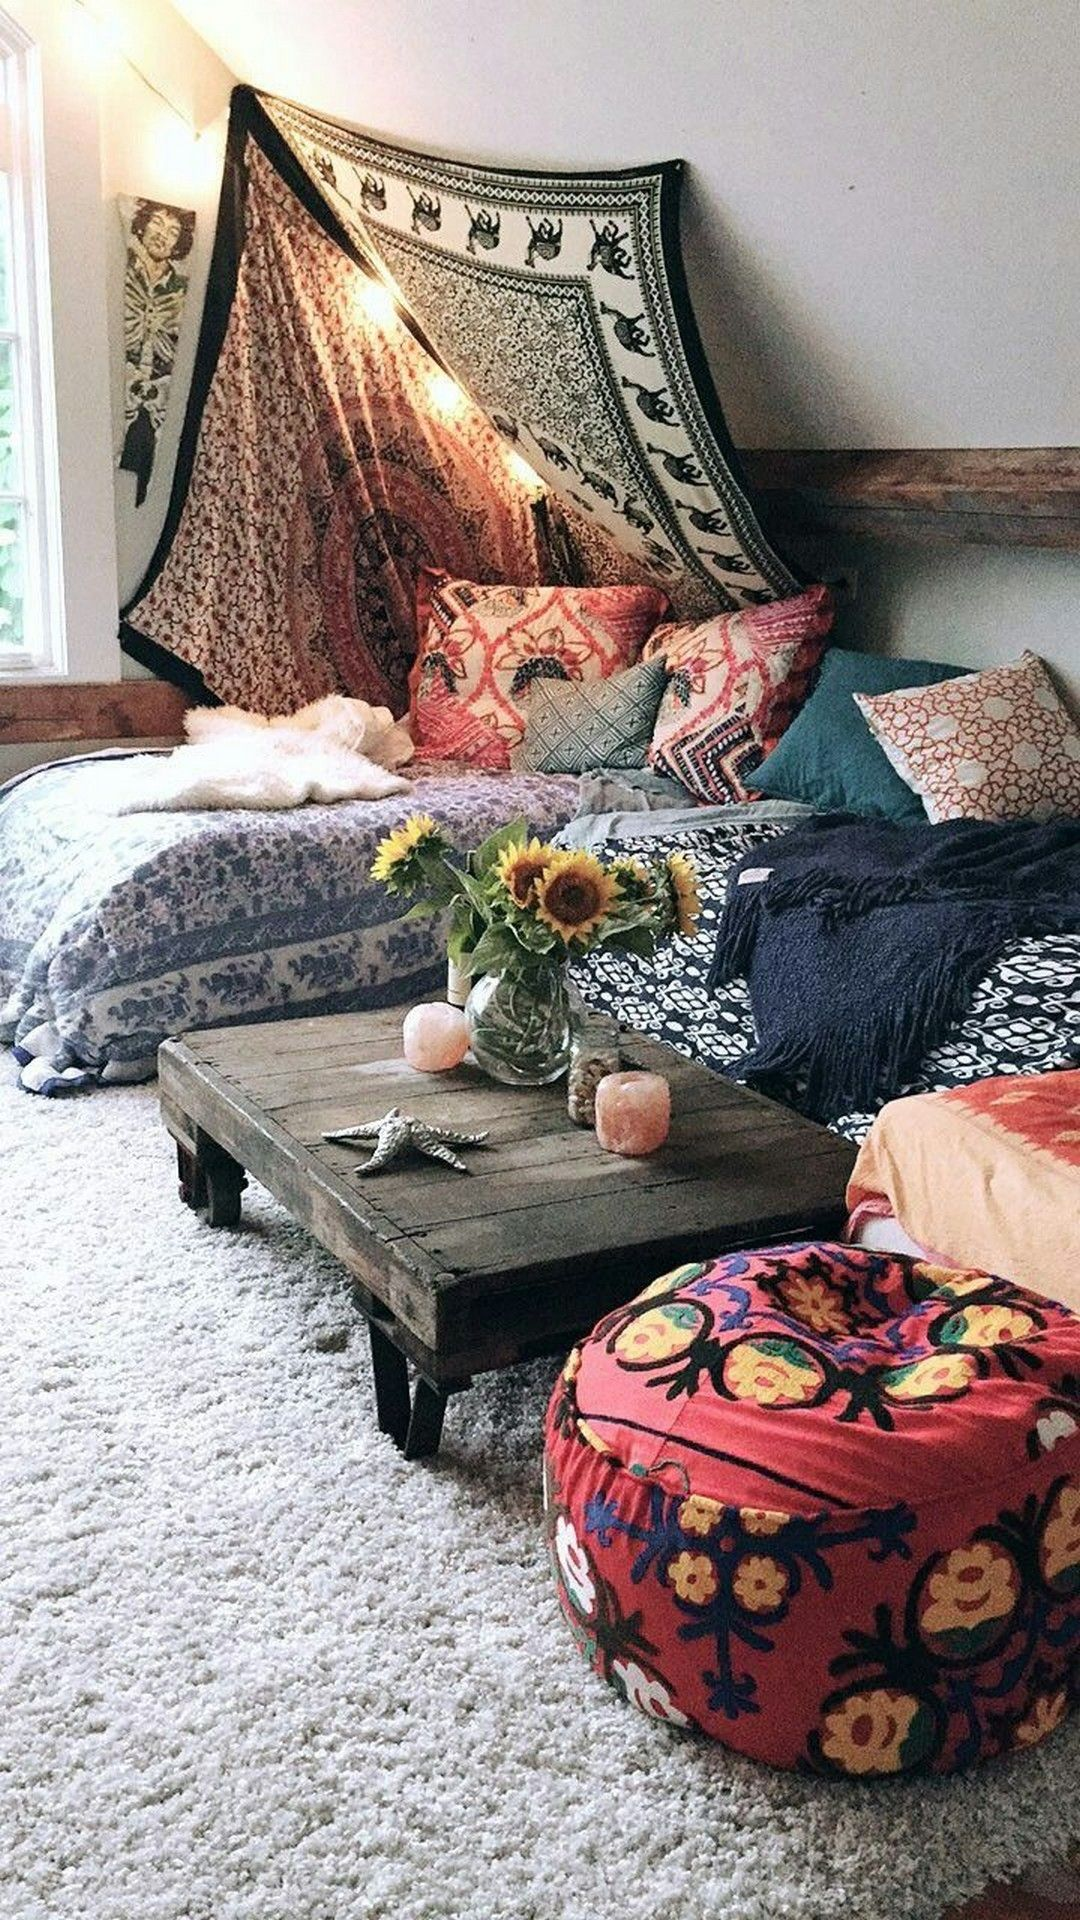 30+ CLEVER WAYS TO DECORATE YOUR HOME LOOK LIKE A HIPPIE BOHO IDEAS images